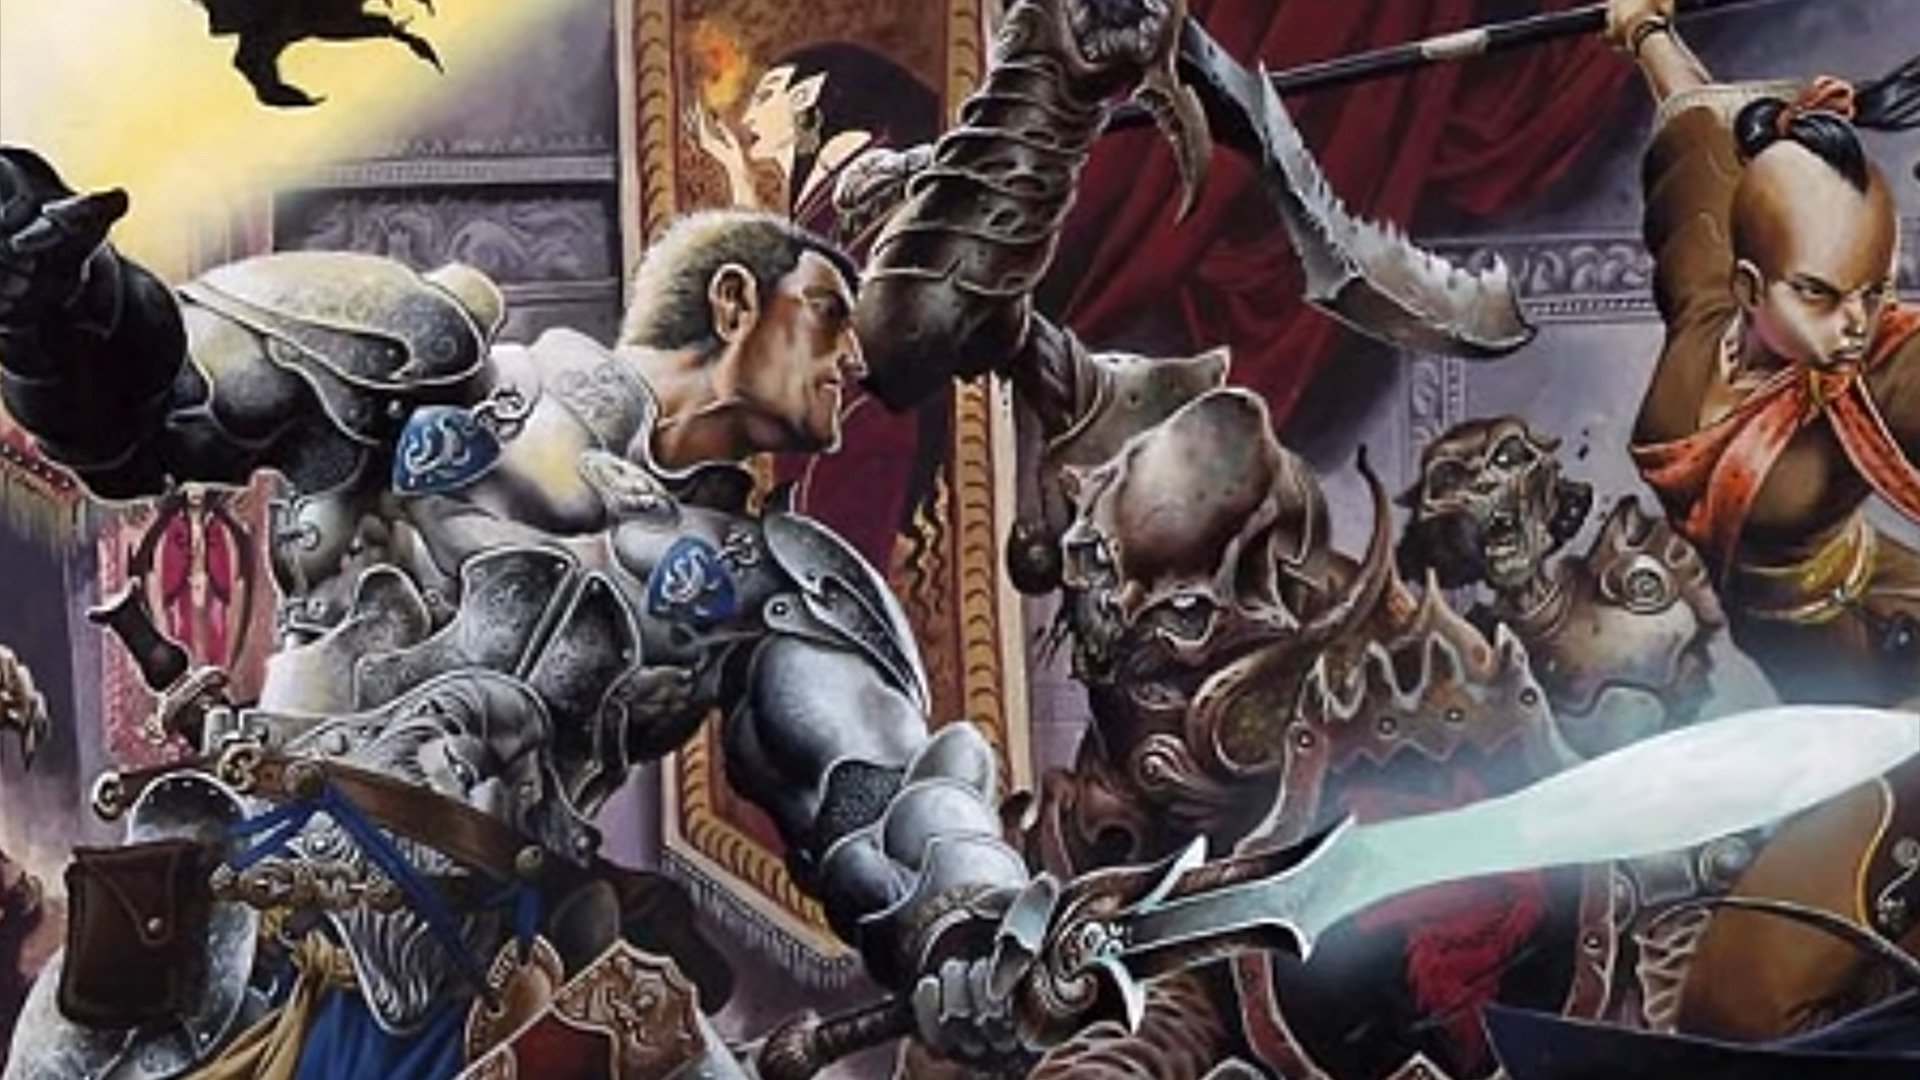 A Fighter's Guide To 5e: A Few Things Every Fighter Should Know In Dungeons And Dragons